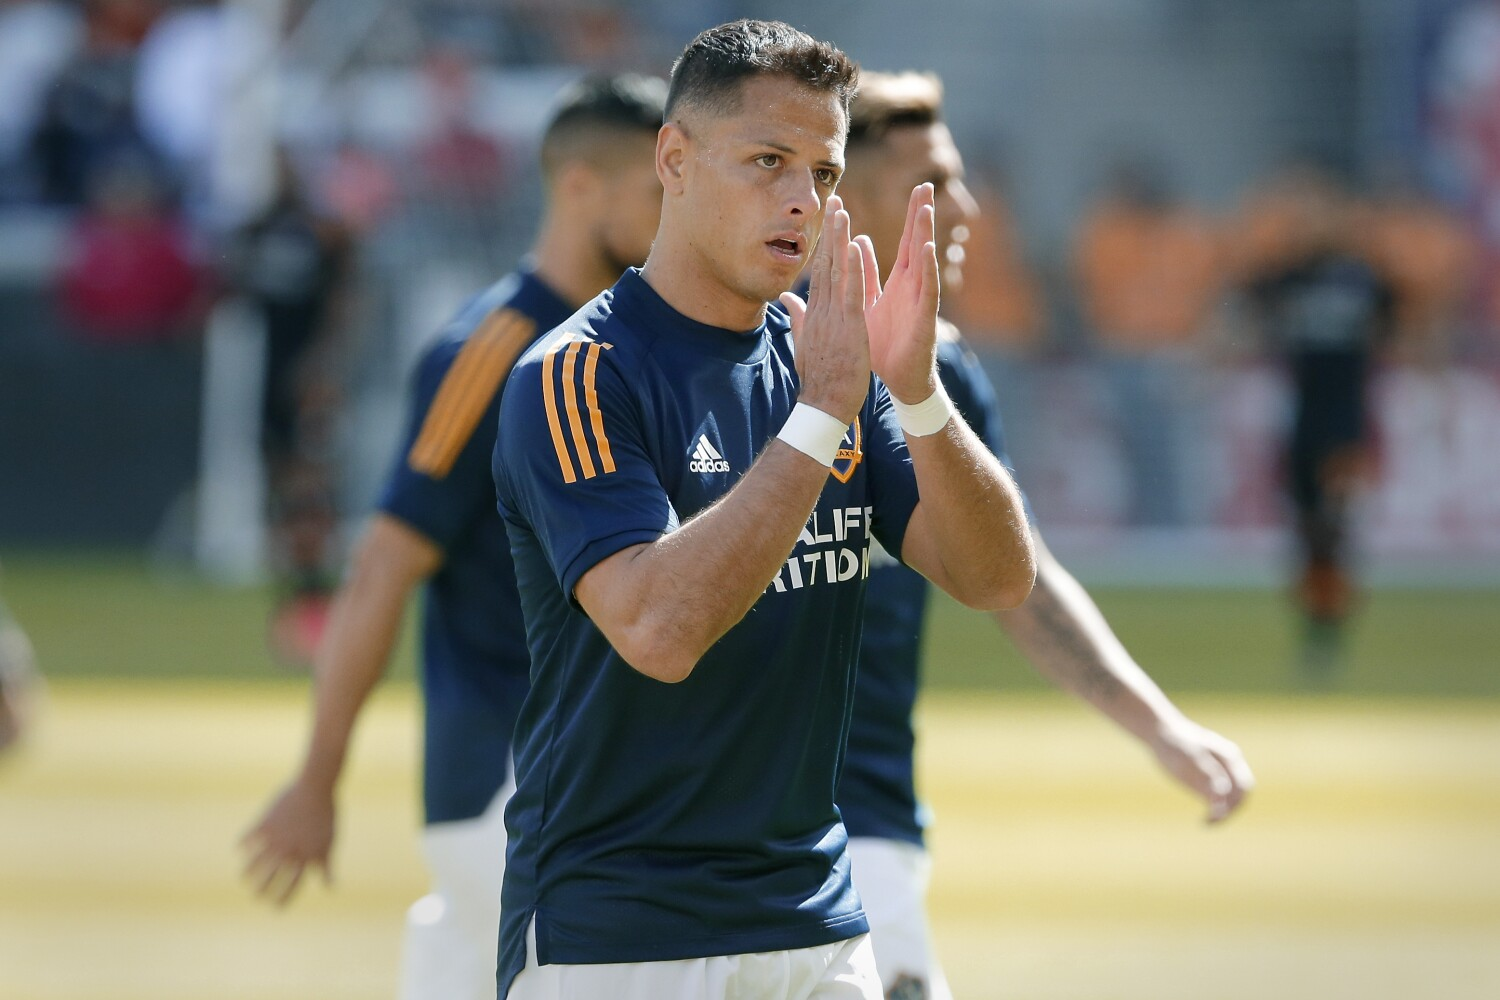 'Chicharito' returns from injury to a streaking Galaxy team, but will he play?